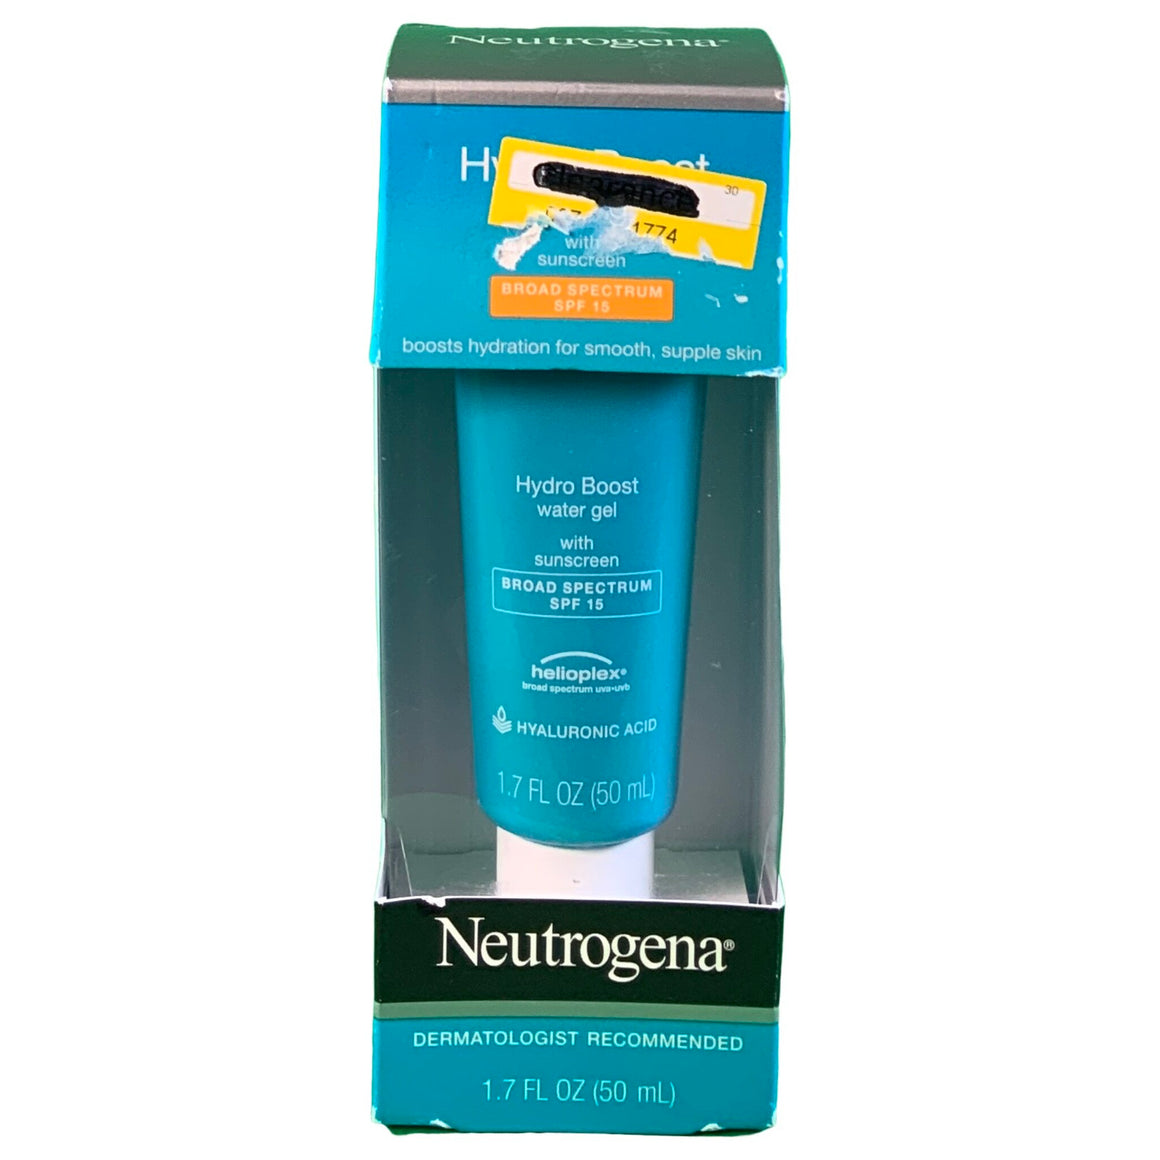 Neutrogena Hydro Boost Hyaluronic Acid Gel Face Cream - Neutrogena